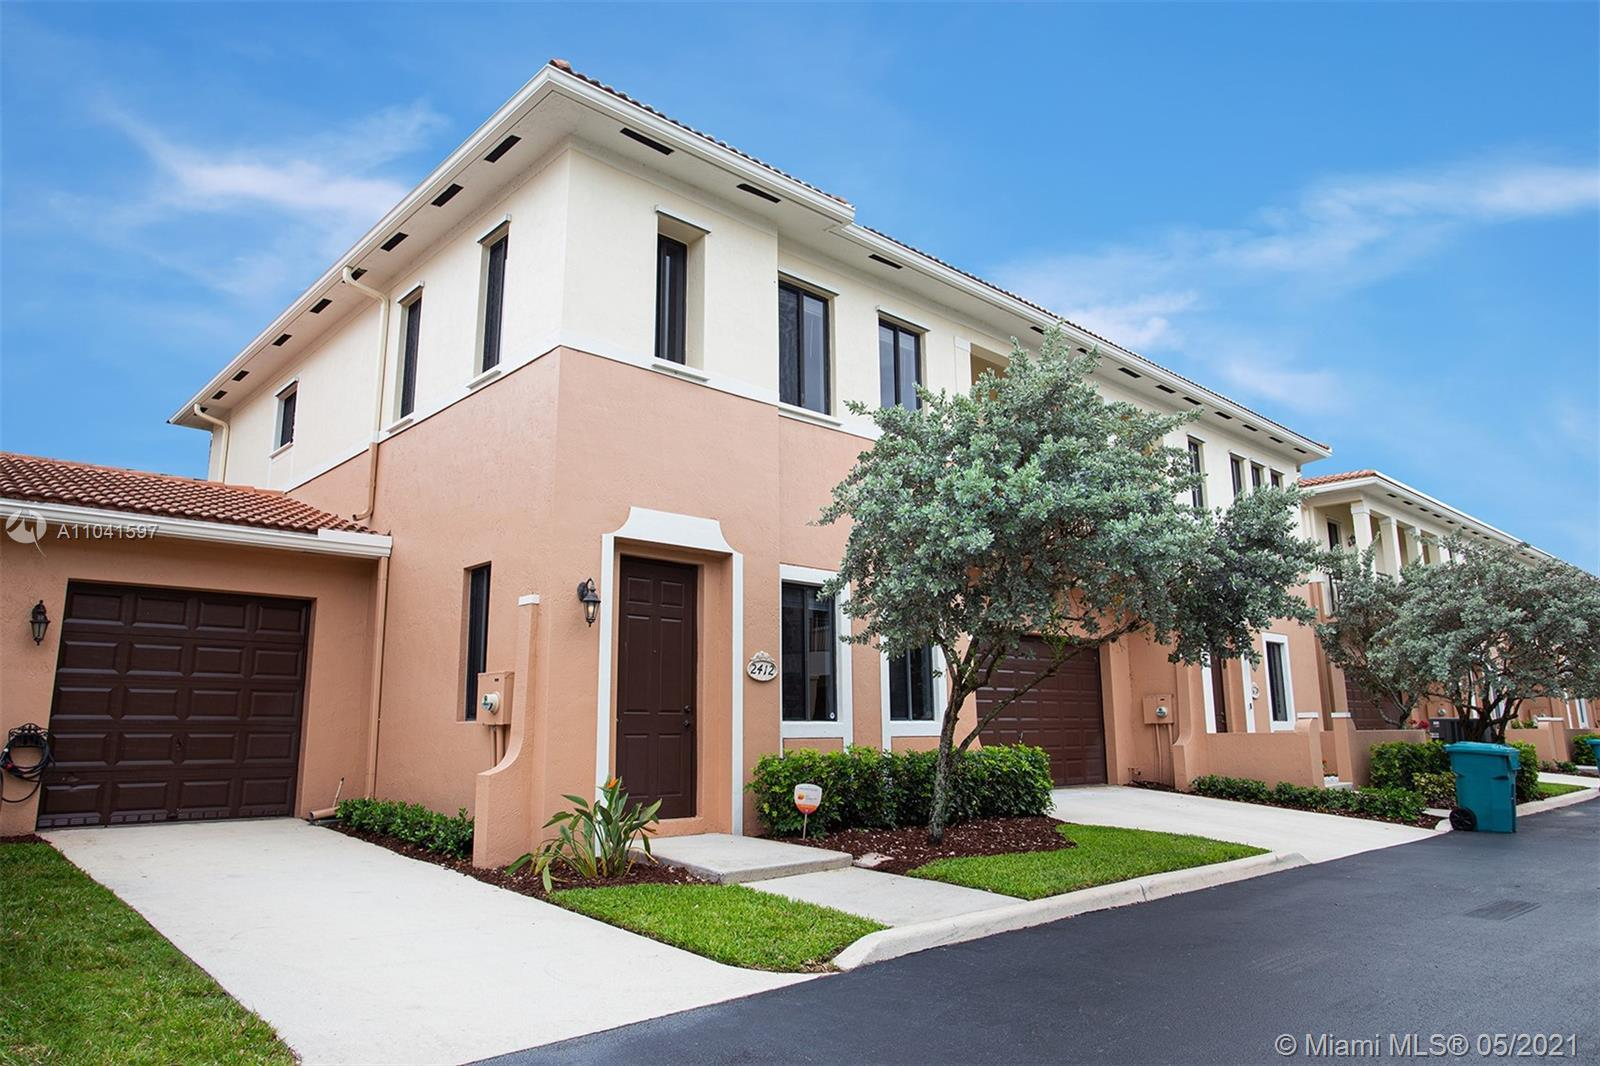 The split two bedroom floorplan with one room downstairs and the master upstairs is ideal for privac